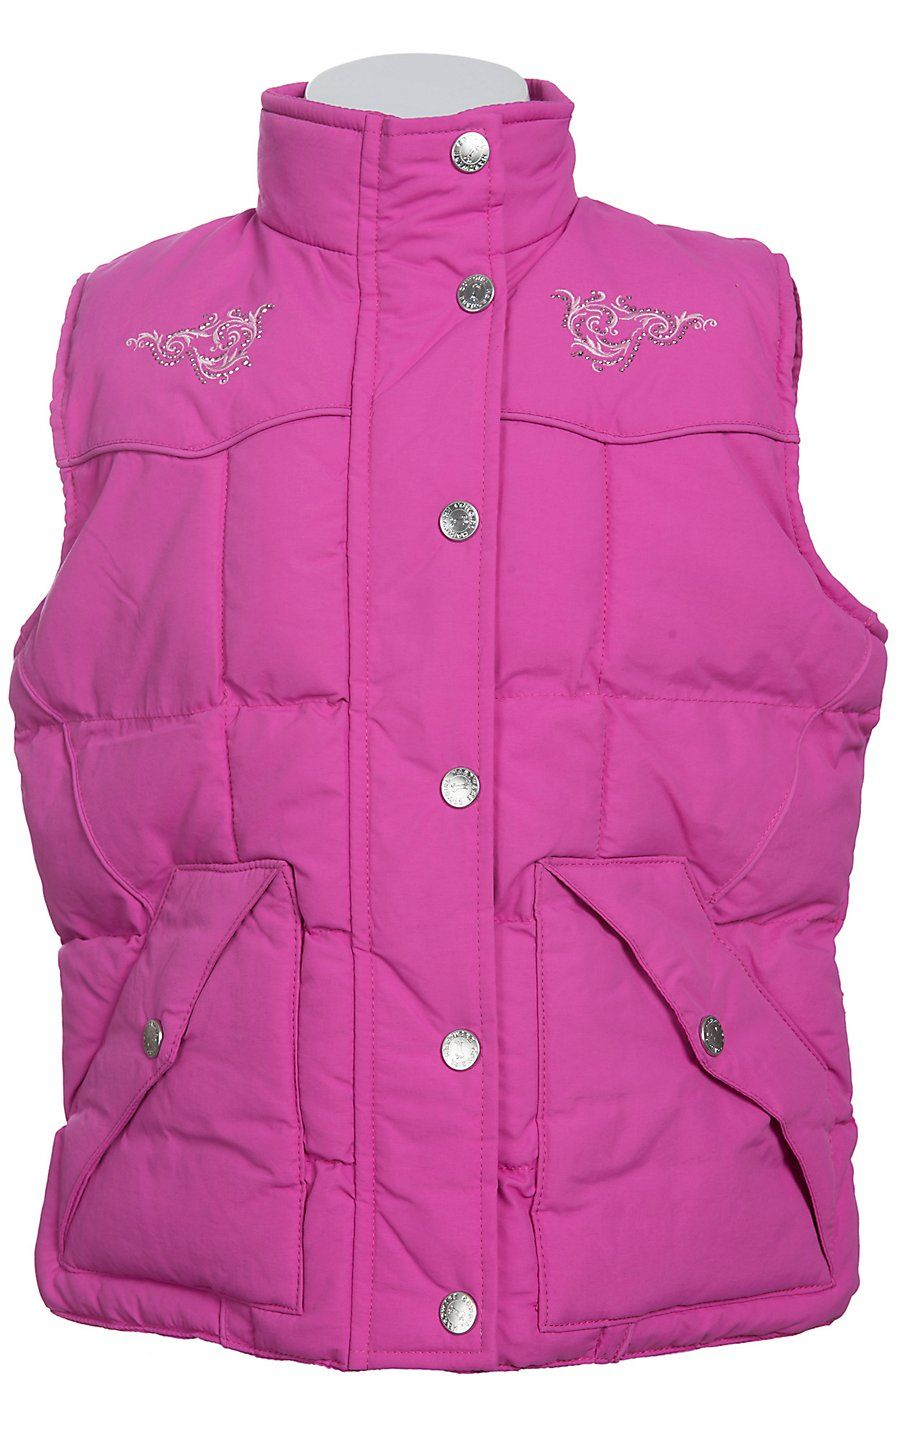 Cowgirl Hardware® Girls Pink with Horse Embroidery & Rhinestuds Vest